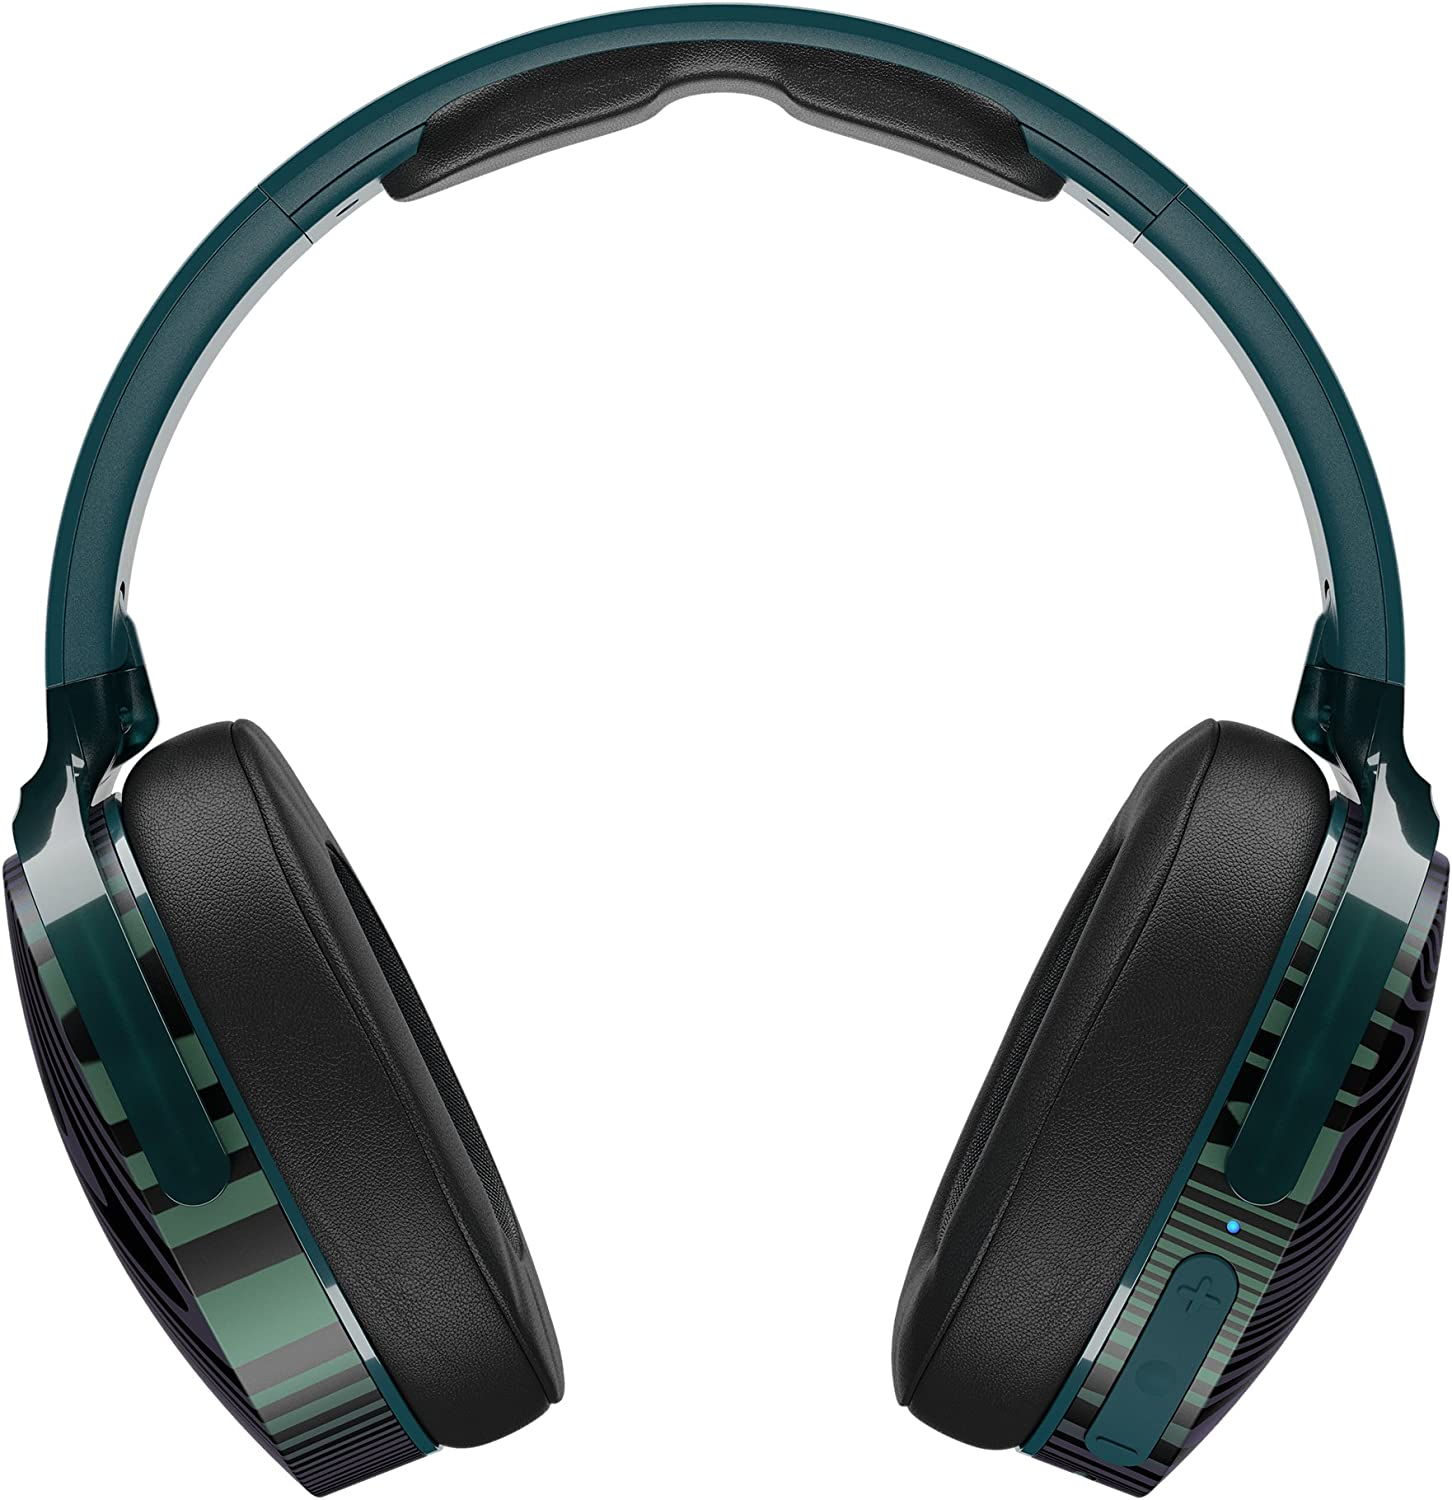 Skullcandy Hesh 3 Wireless Over-Ear Courier shipping free shipping Tropical - Psycho Long Beach Mall Headphone